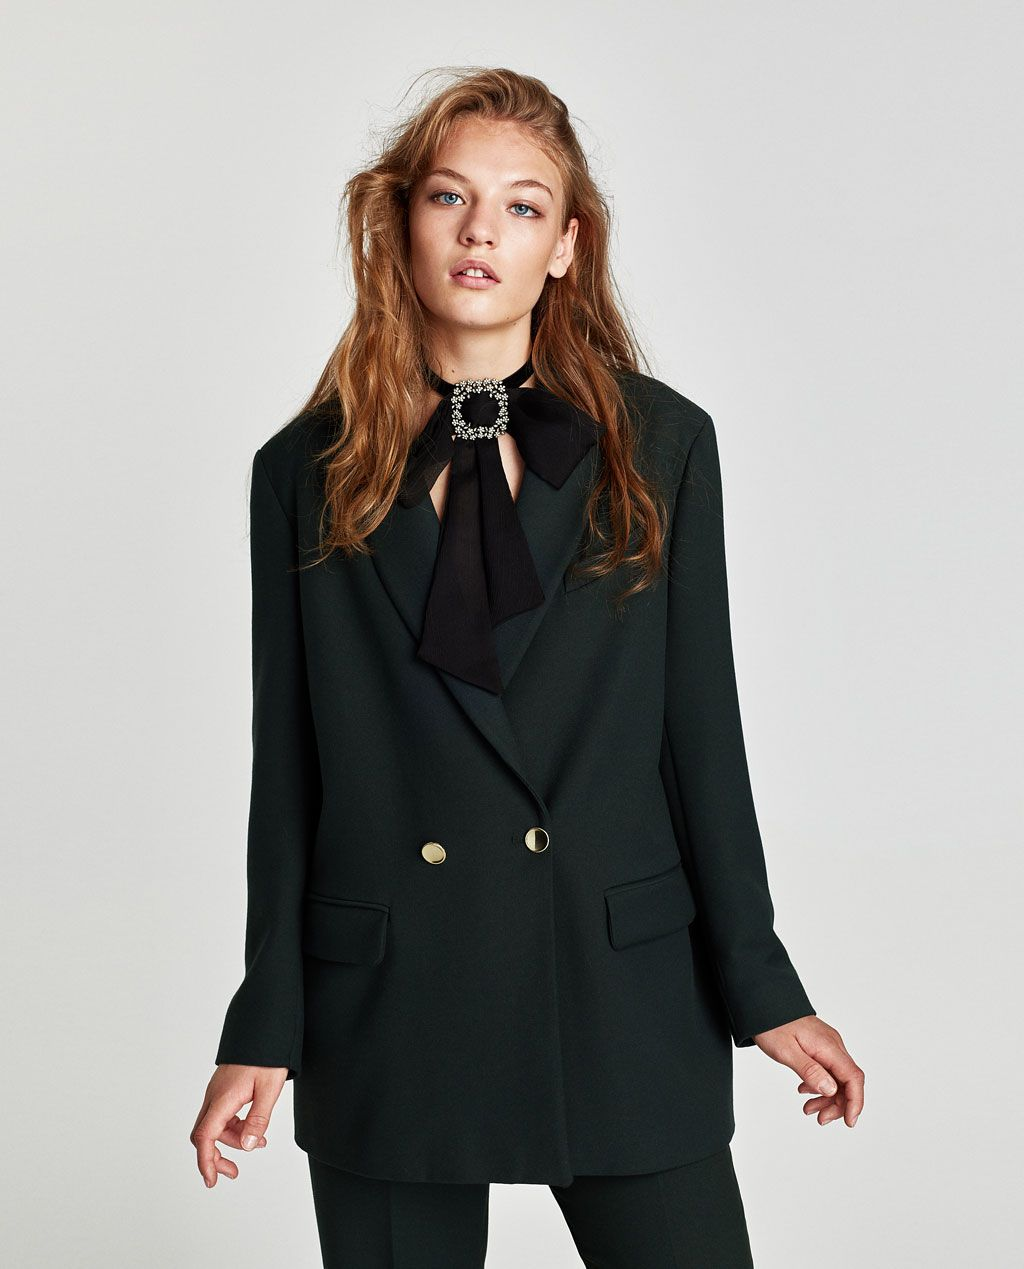 Pin By Oxana Nigmatulina On Vetements Fashion Blazer Double Breasted Blazer